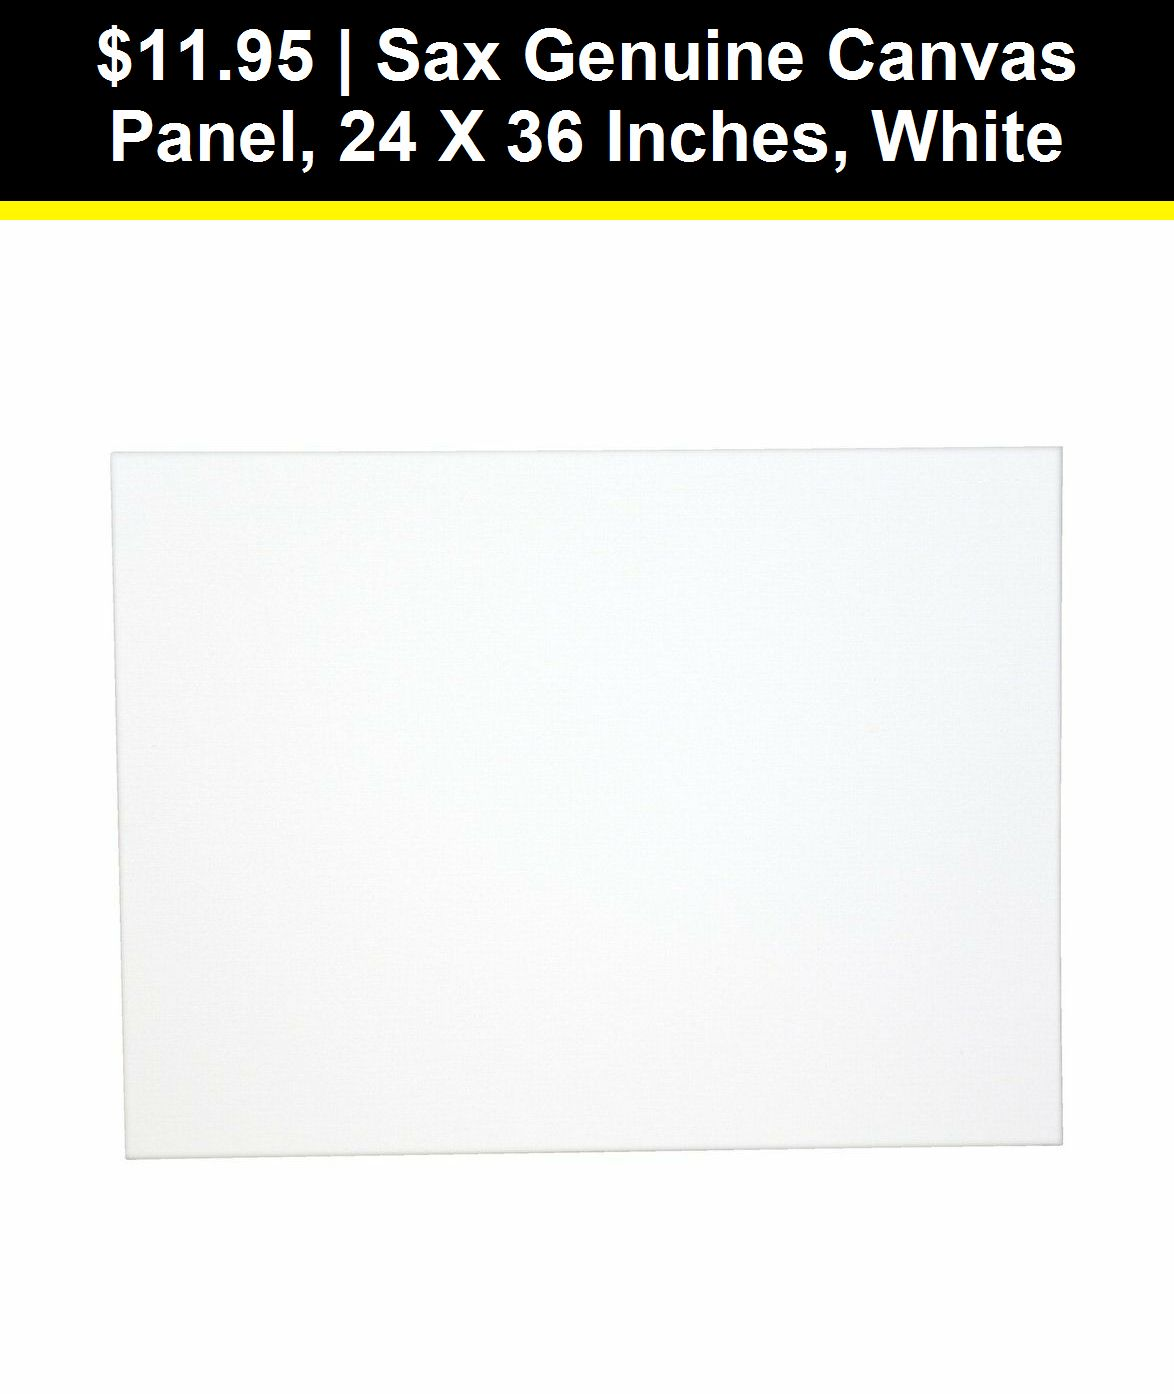 White Sax Genuine Canvas Panel 24 x 30 Inches